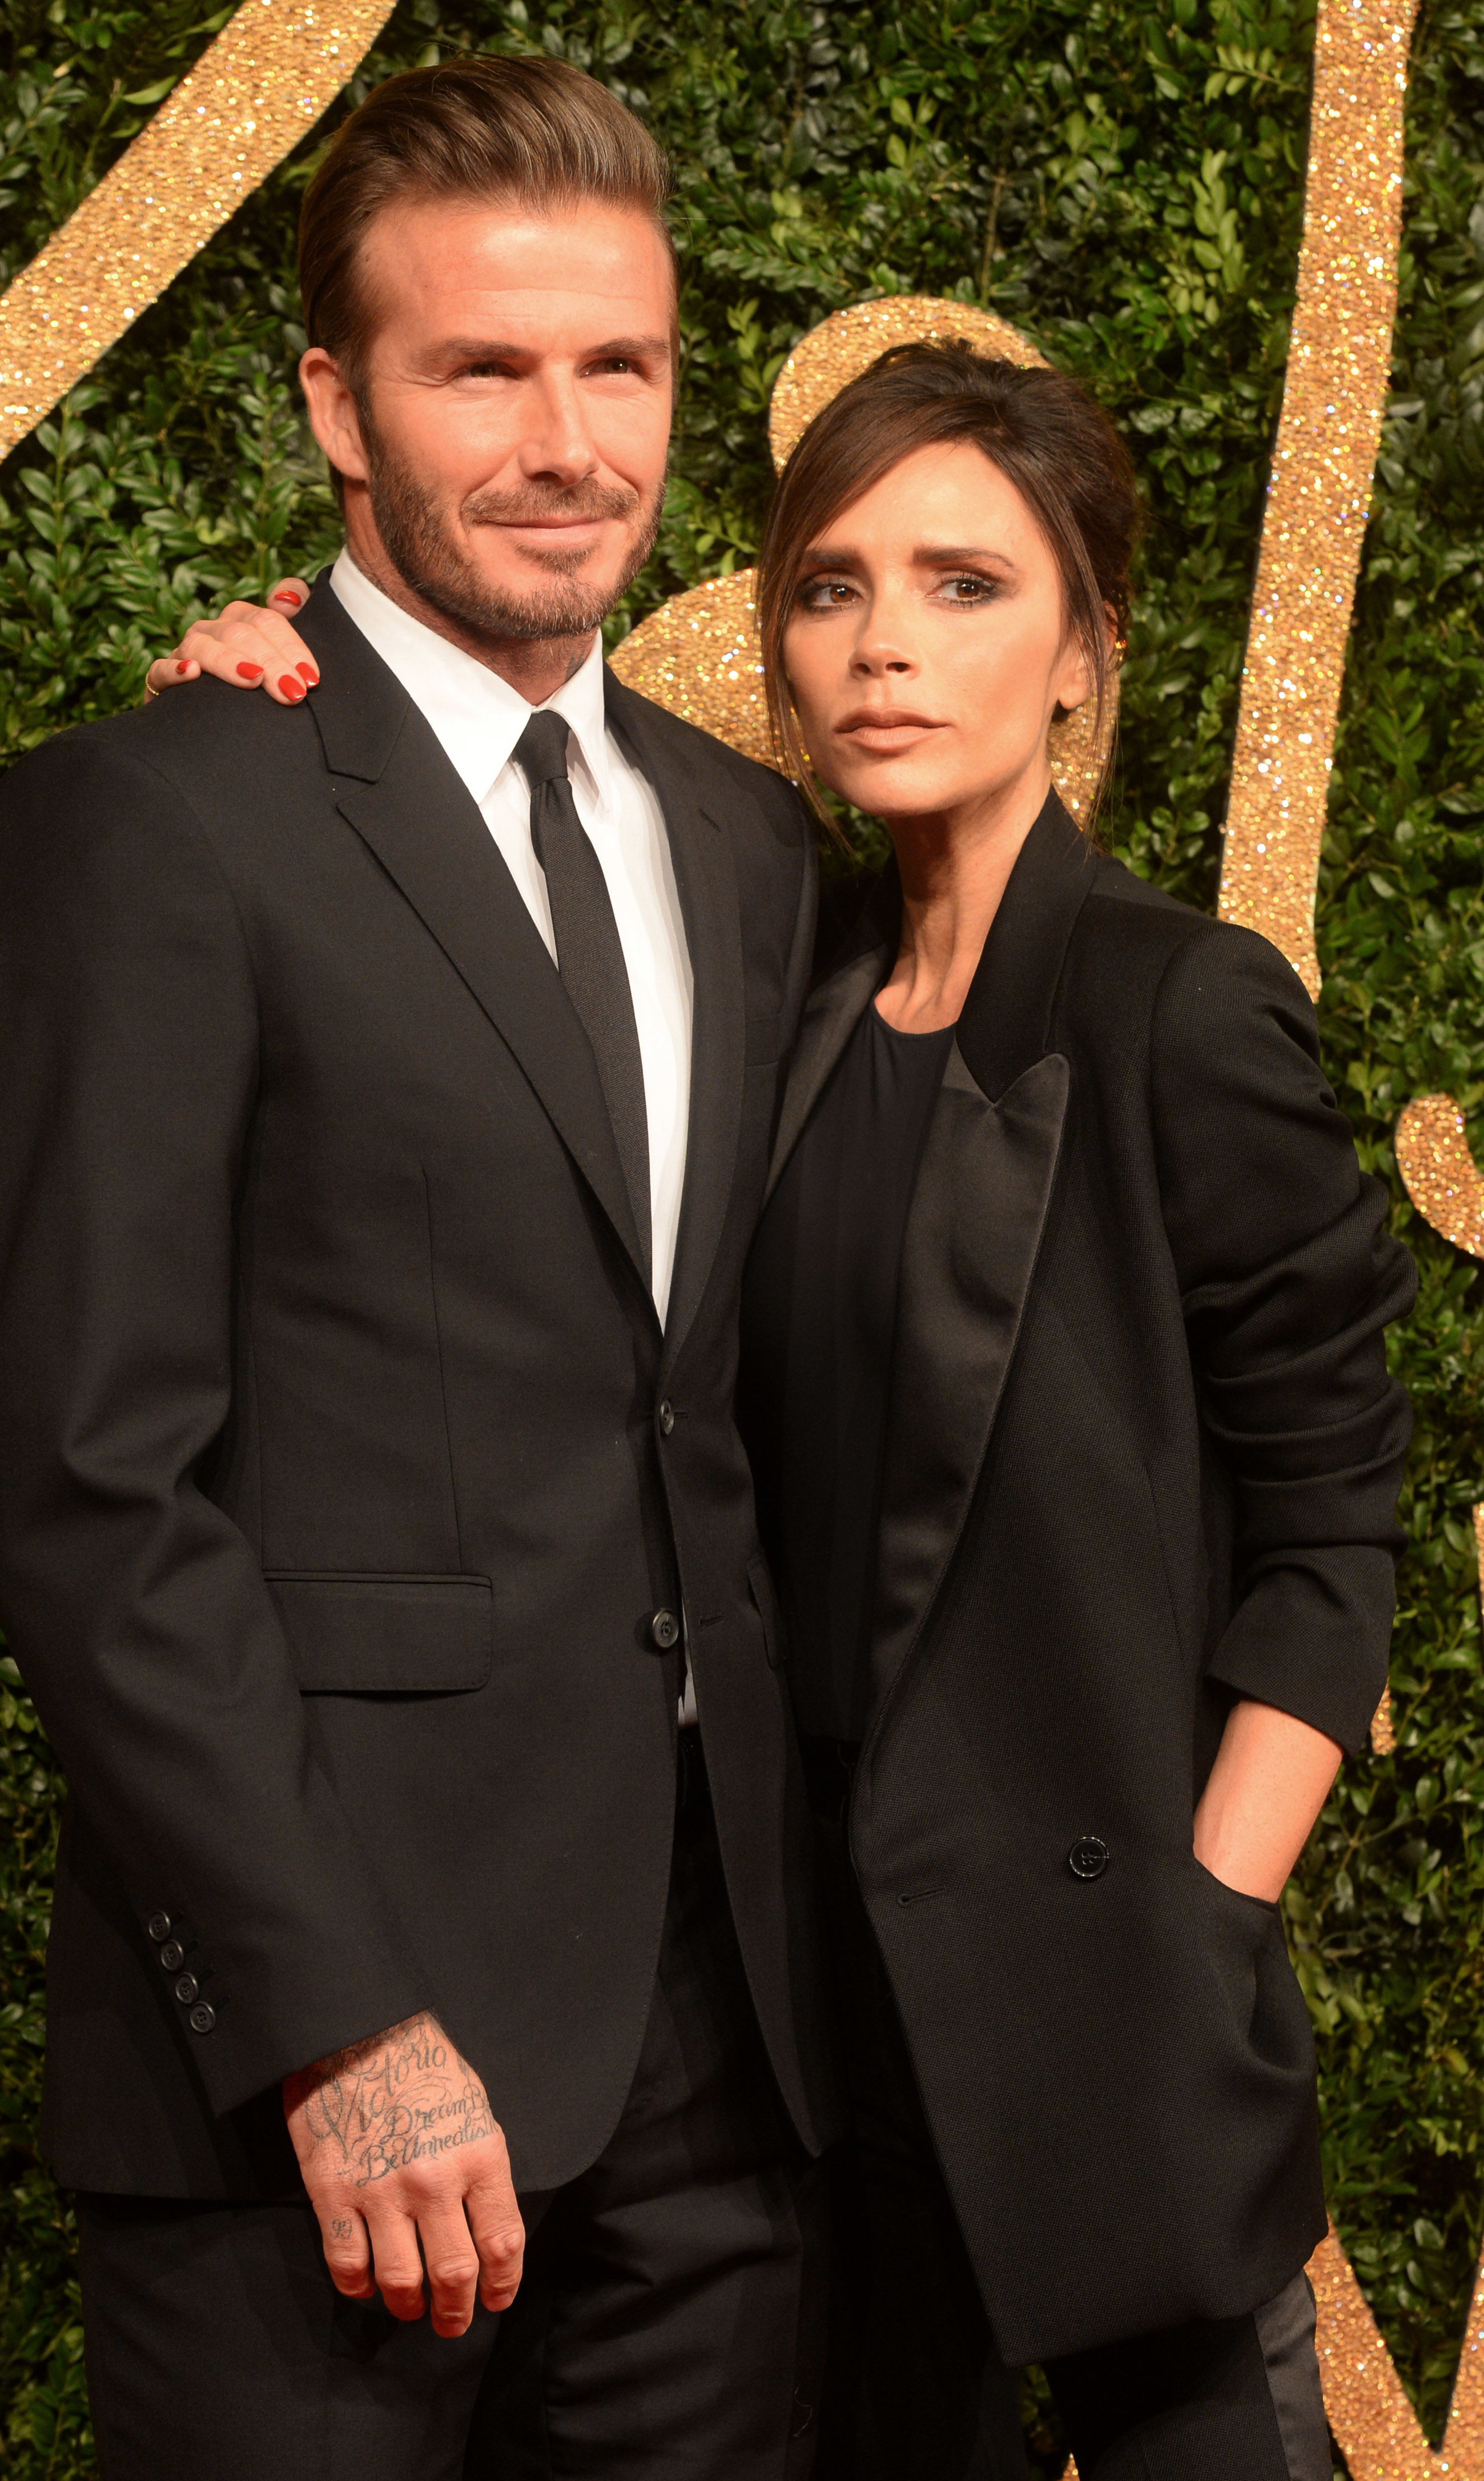 David and Victoria Beckham attend the British Fashion Awards at The Coliseum in London on Nov. 23, 2015.